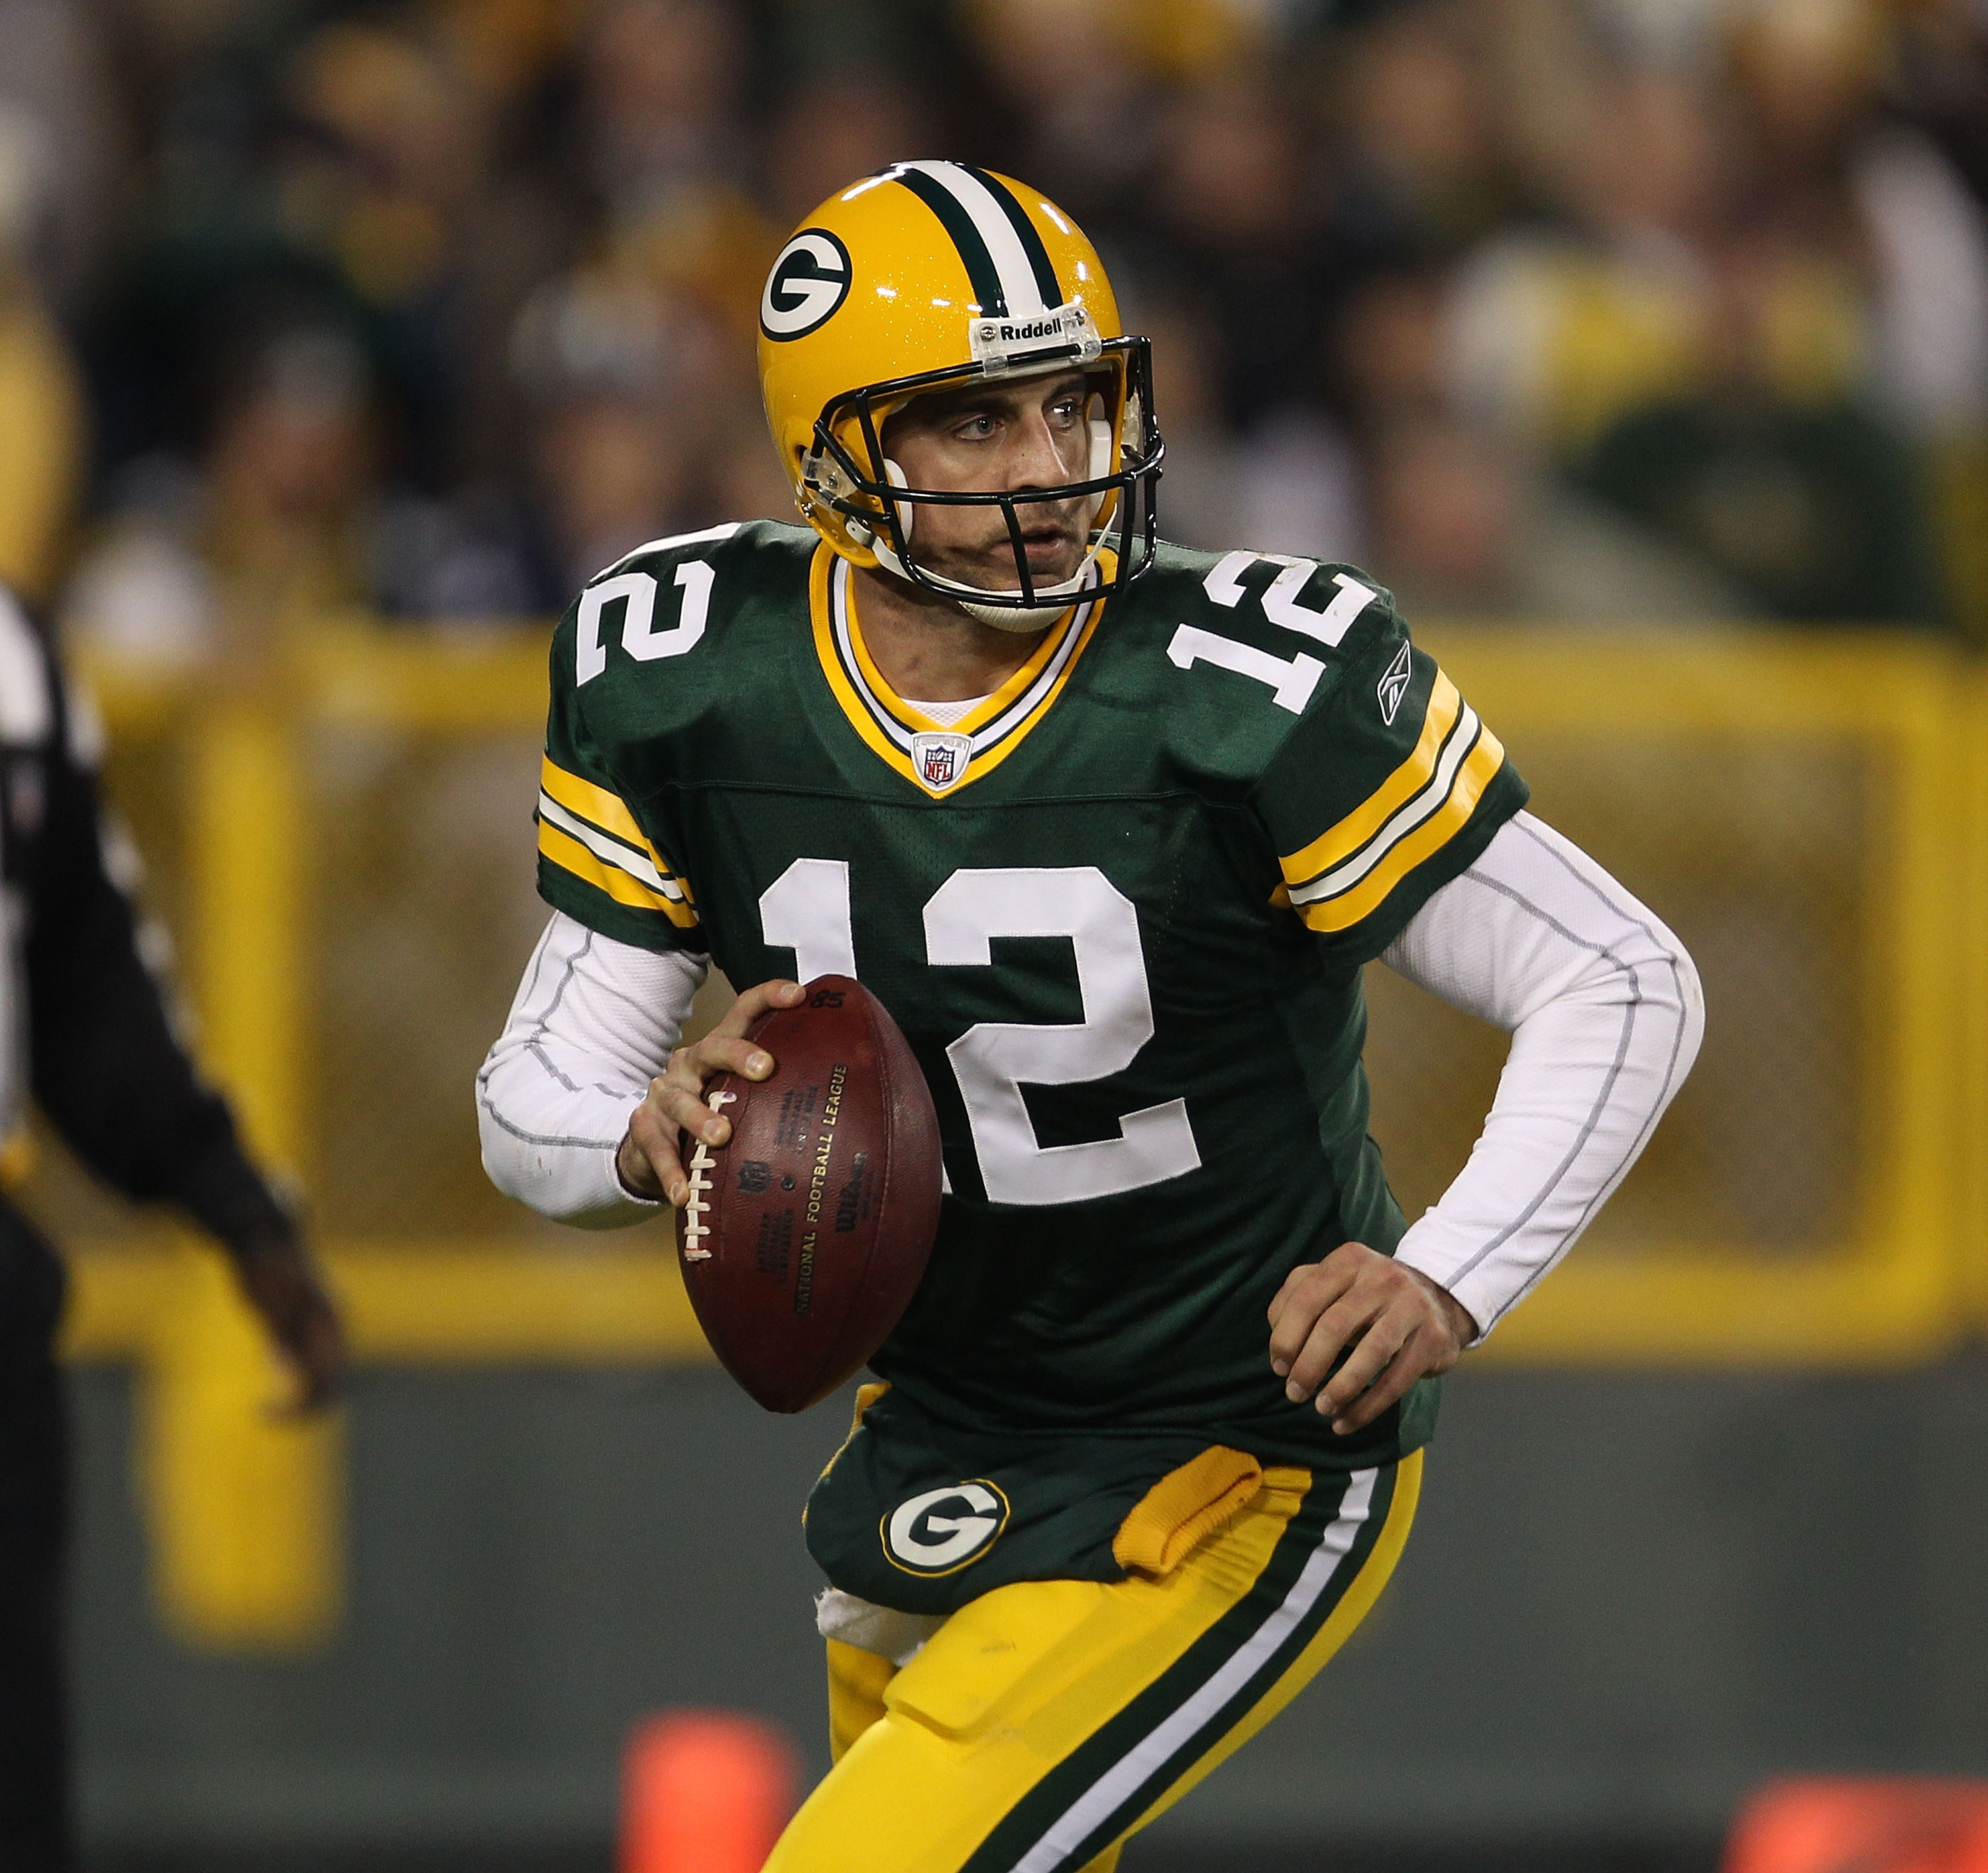 Rodgers waited three years on the bench before he got his shot.